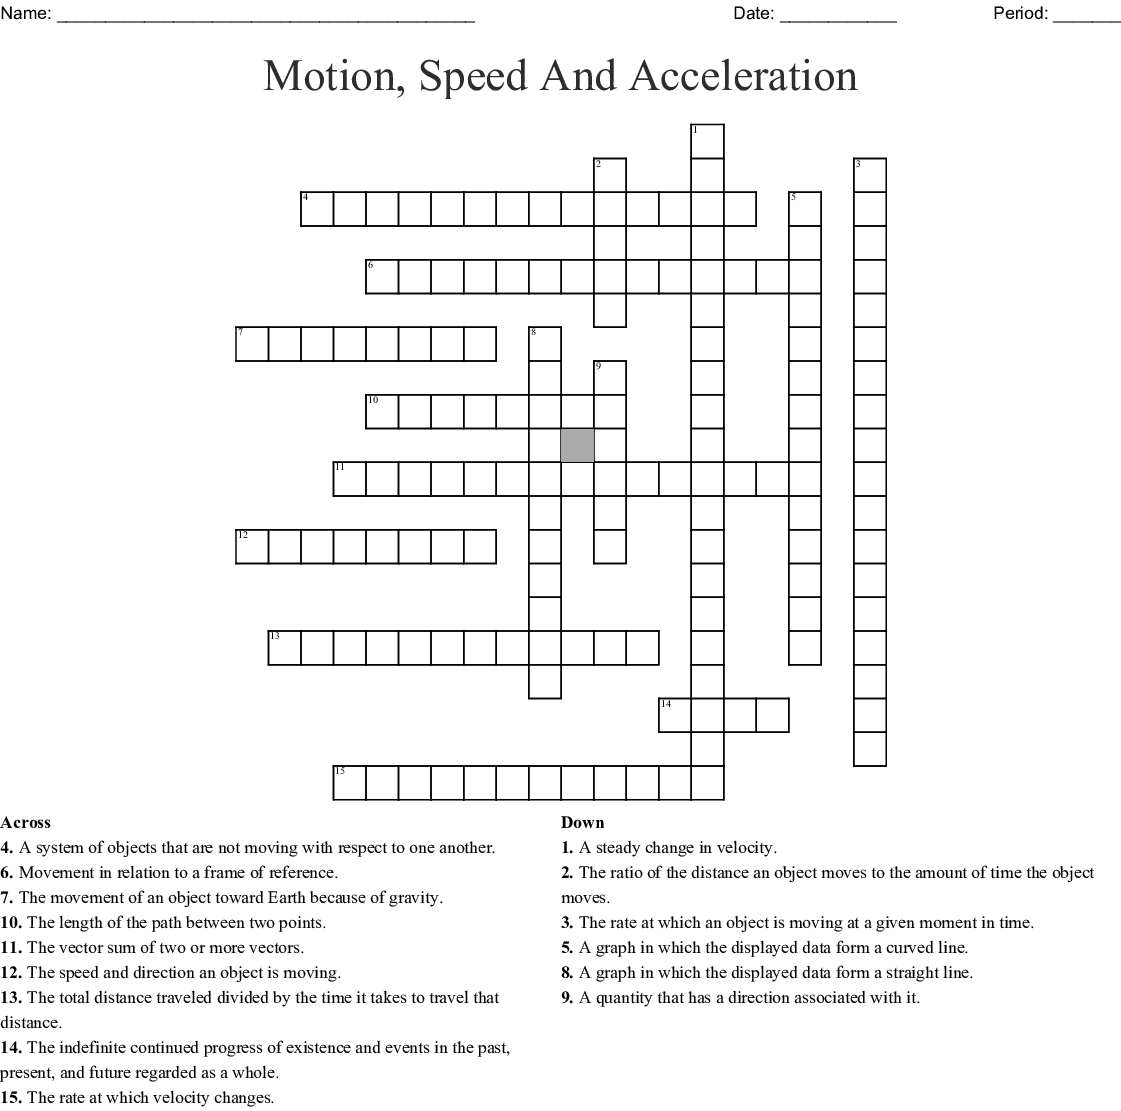 Motion, Speed And Acceleration Crossword - Wordmint - Printable 2 Speed Crossword